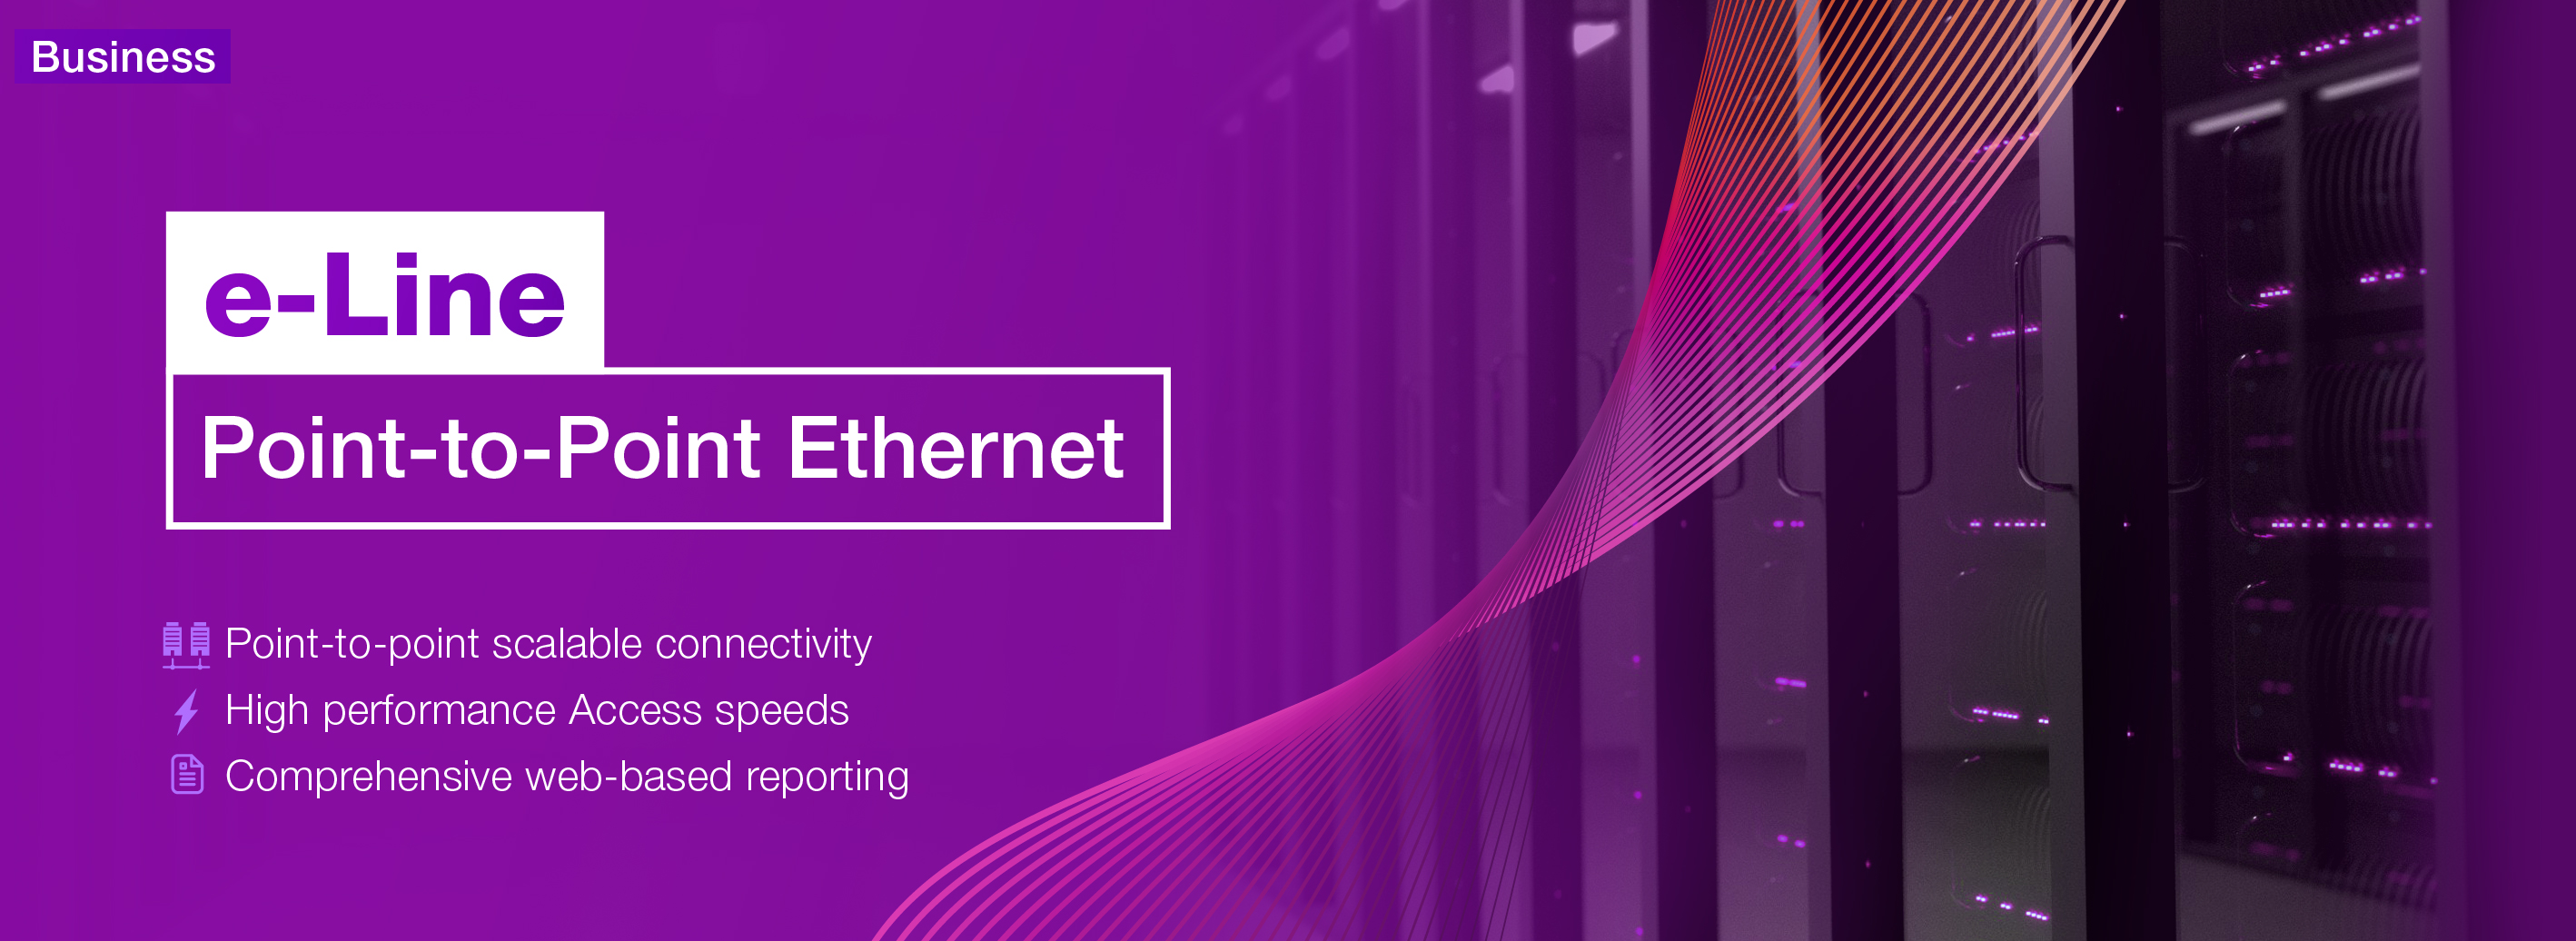 e-Line: Point to Point Ethernet